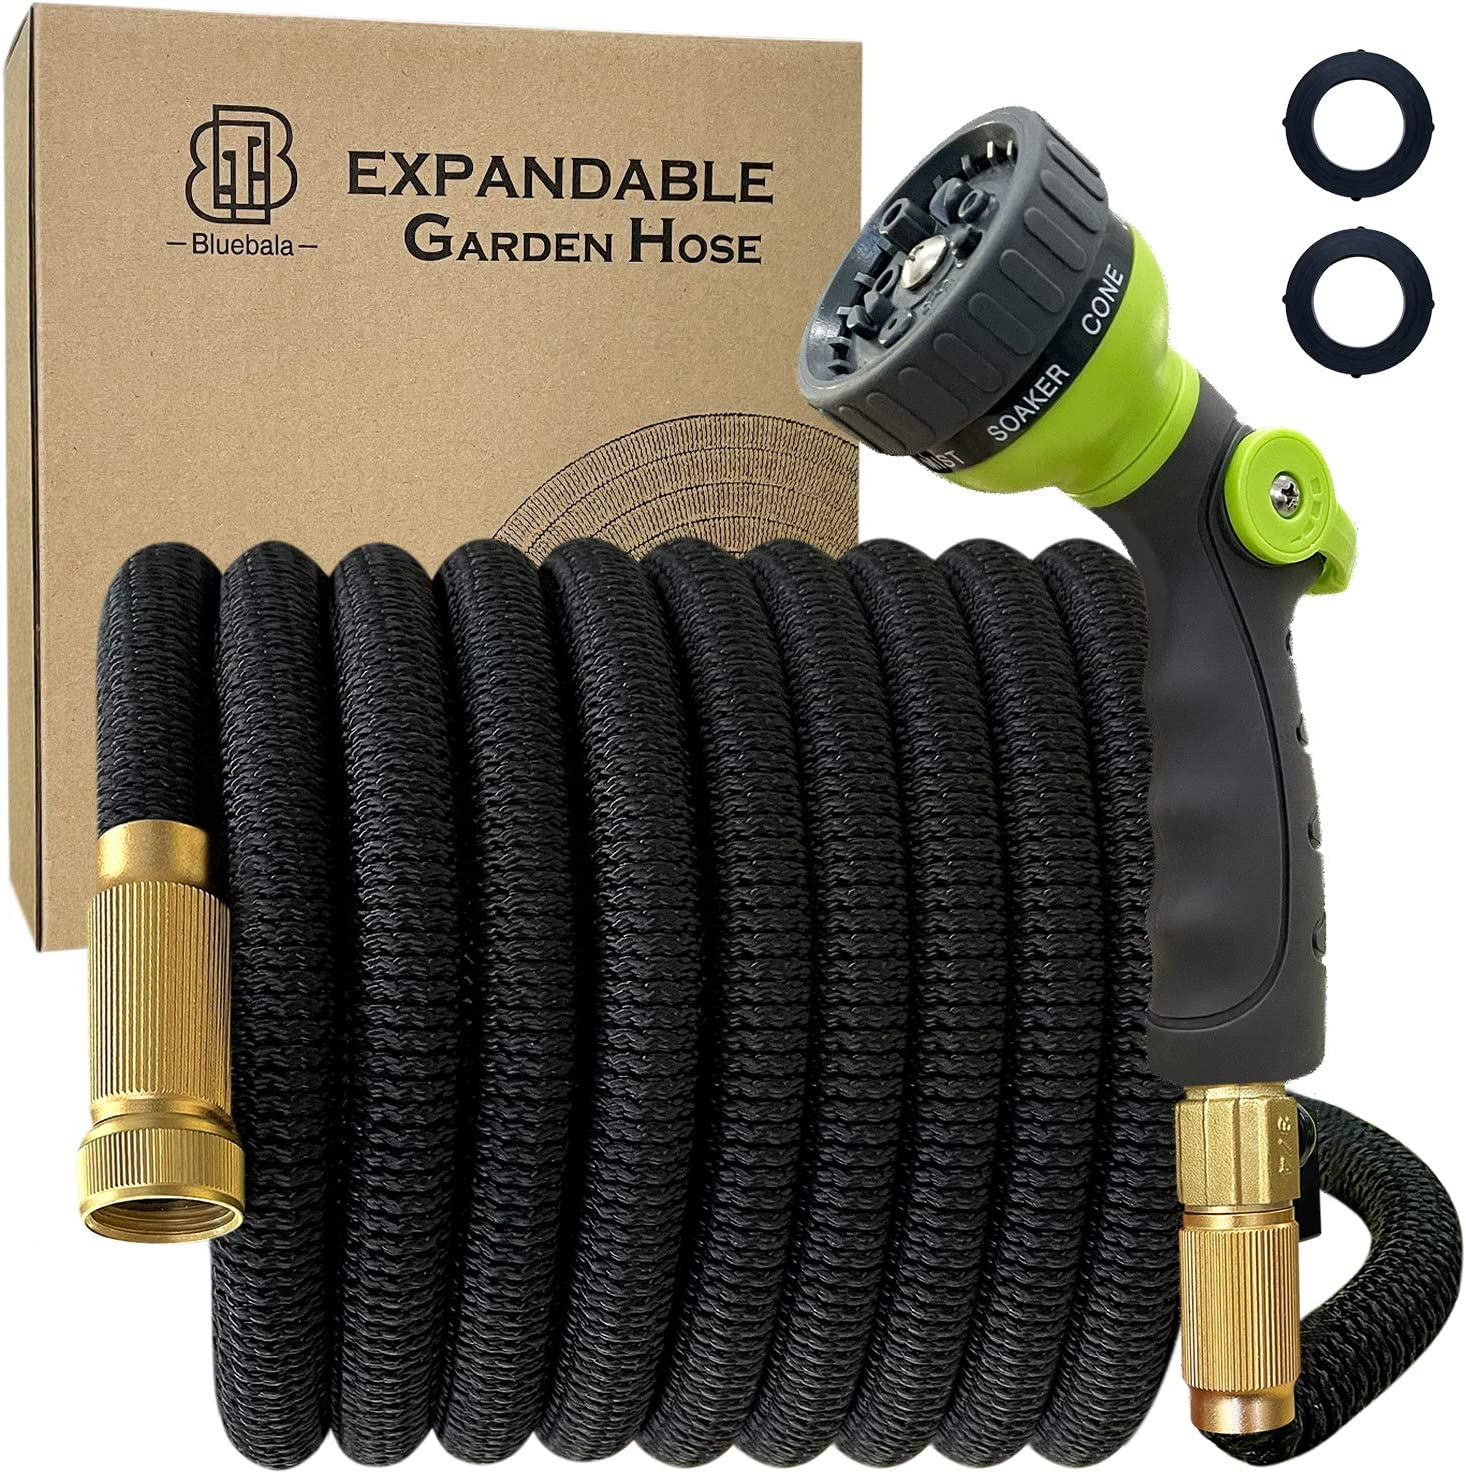 Bluebala Flexible Expandable Garden Hose - Expending Latex Water Hose with High Strength Fabric, 8-Function Nozzle and Solid Brass Fittings, No Kink, Save space, Portable and Easy Storage (25 FT)